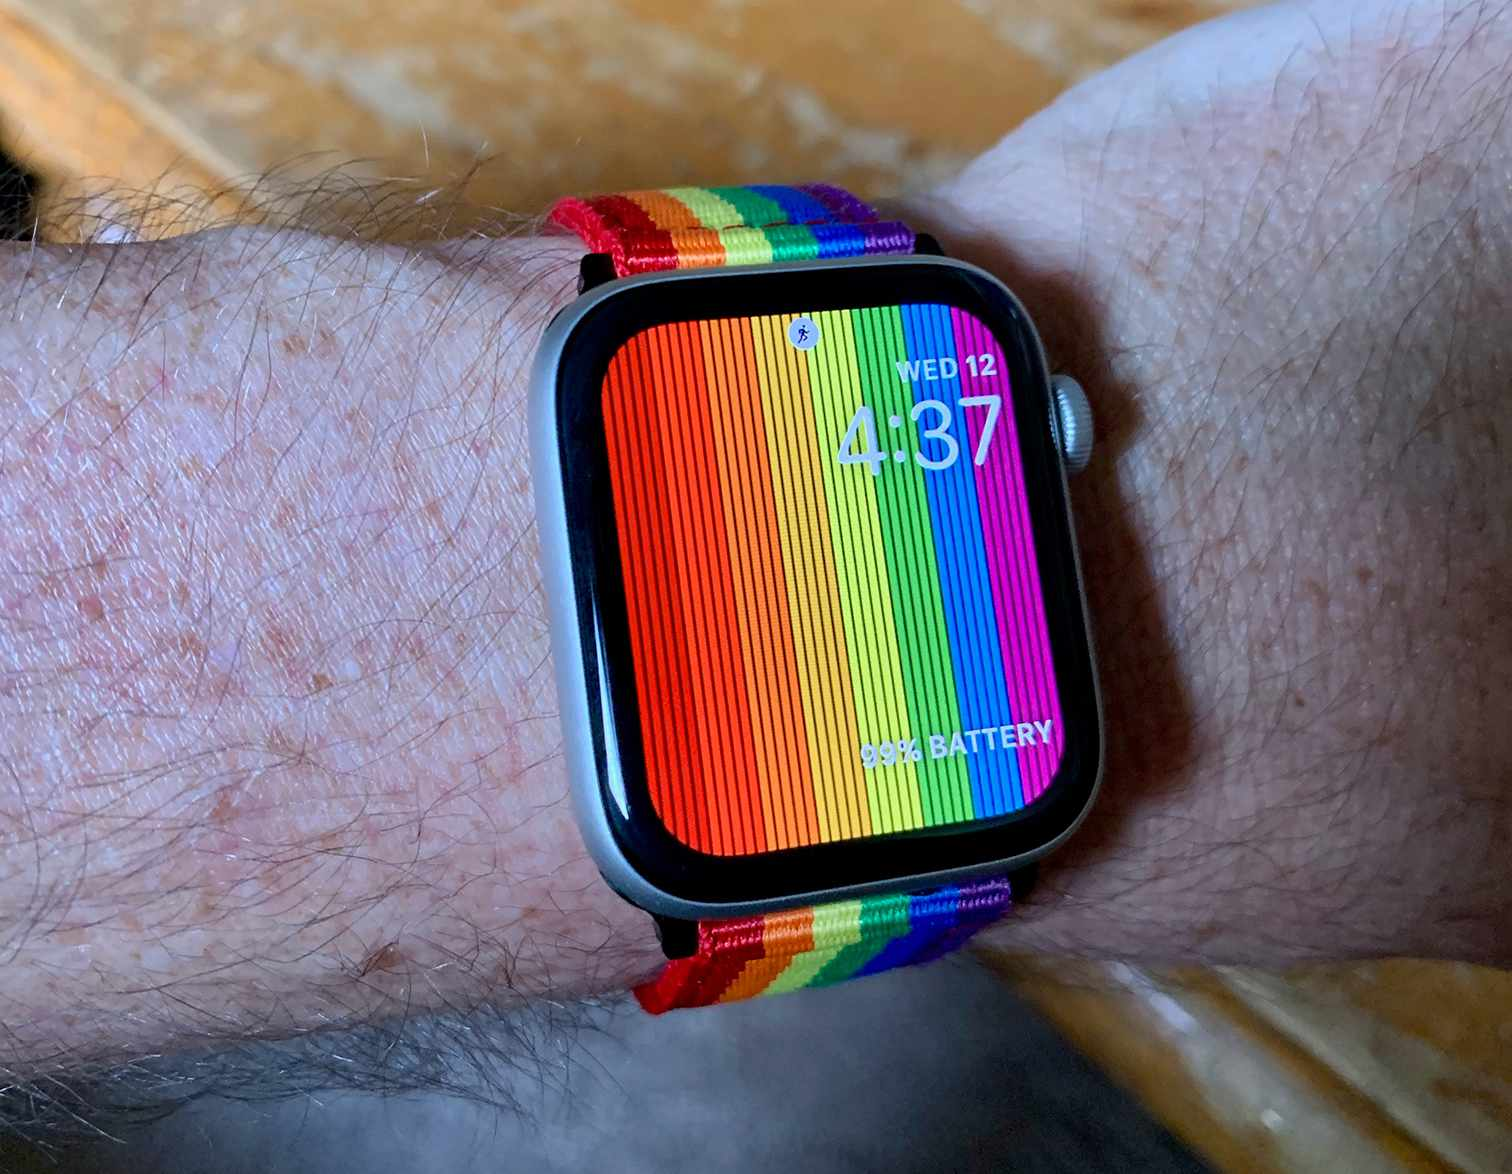 Apple Watch with Pride rainbow band and watch face